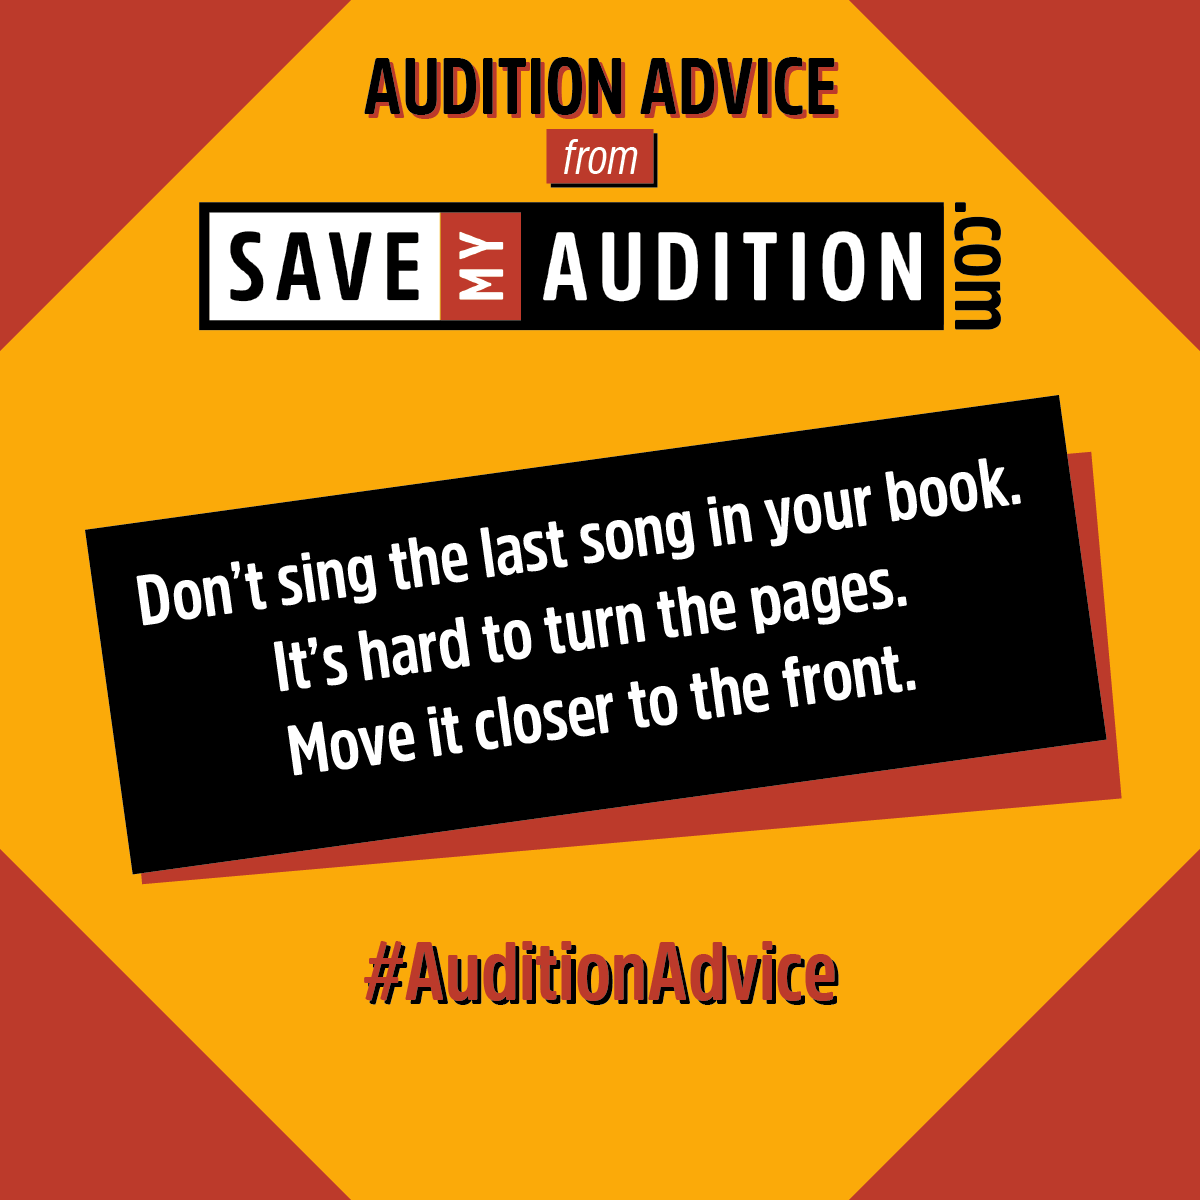 041519_AUDITION_ADVICE.png